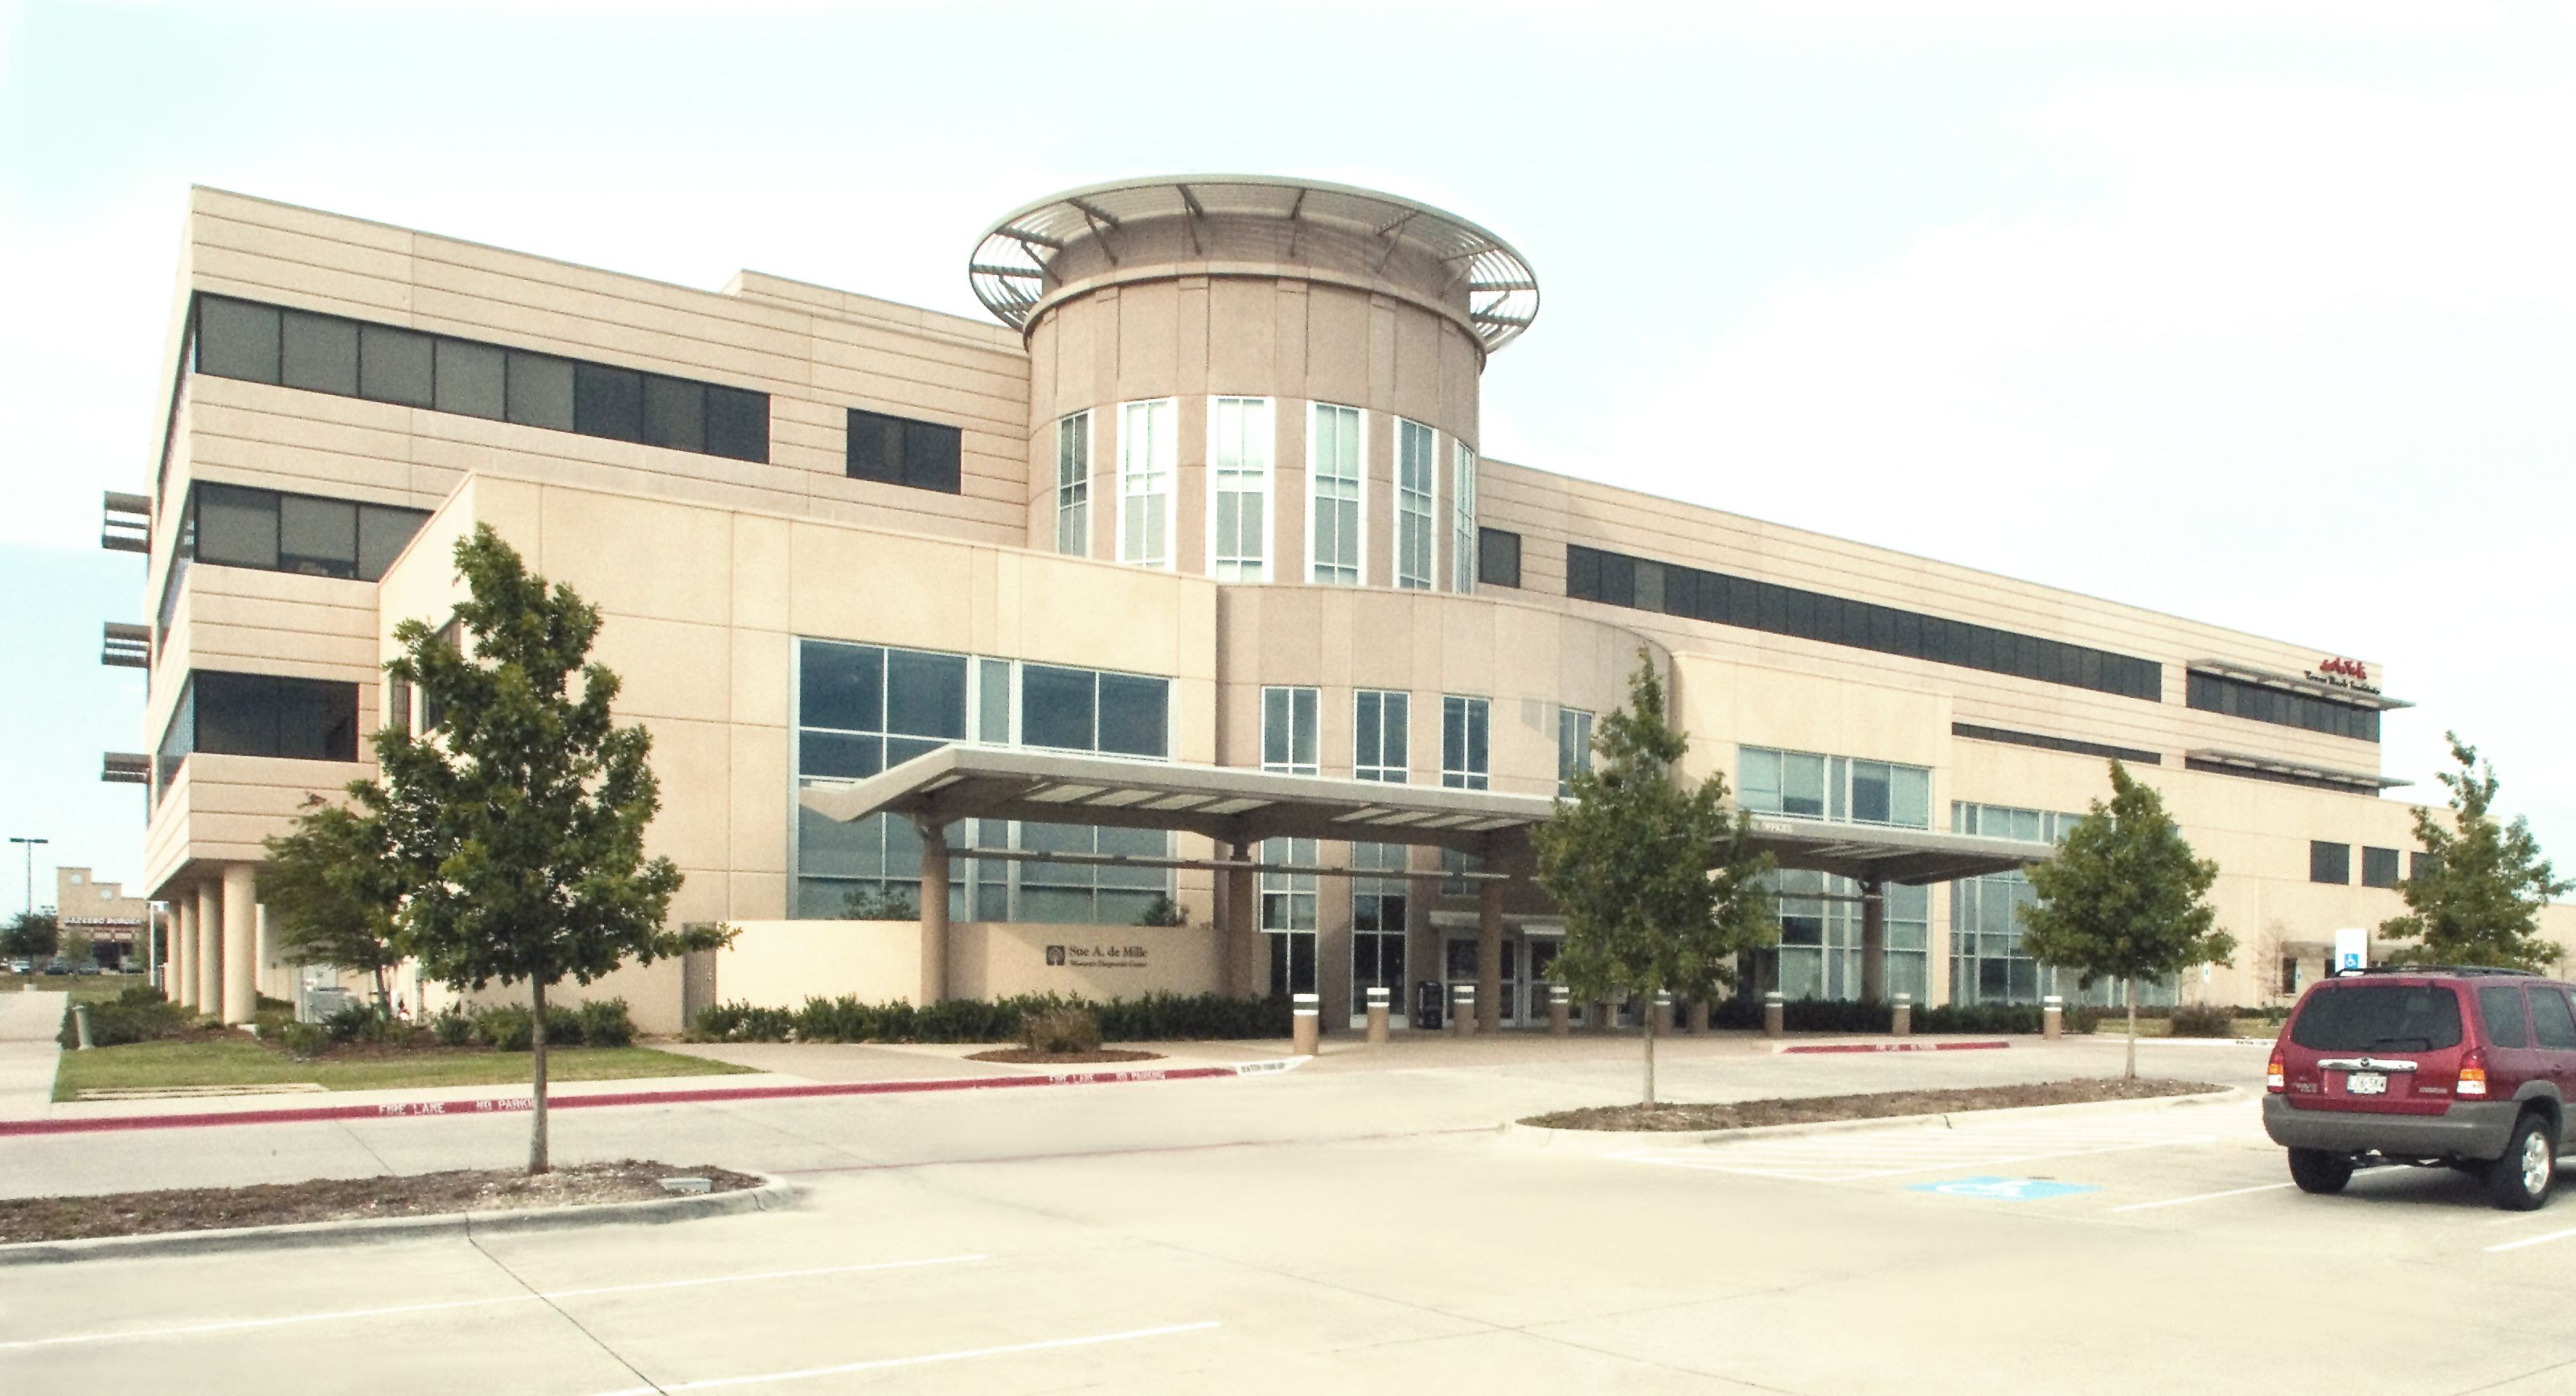 Texas Health Resource For Diagnostic And Surgery Center 6020 W Parker Road Ste 400b Plano Texas 75093 Pho Health Resources Surgery Center Clinical Trials